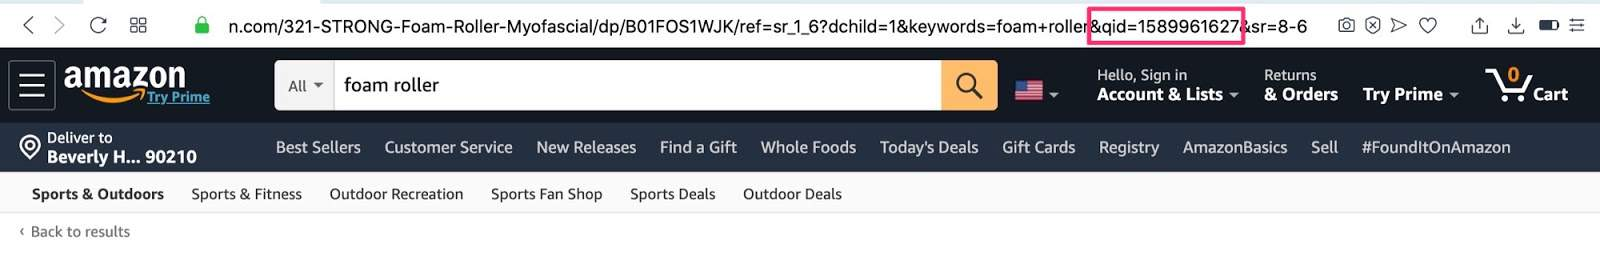 UTM time stamp from Amazon URLS